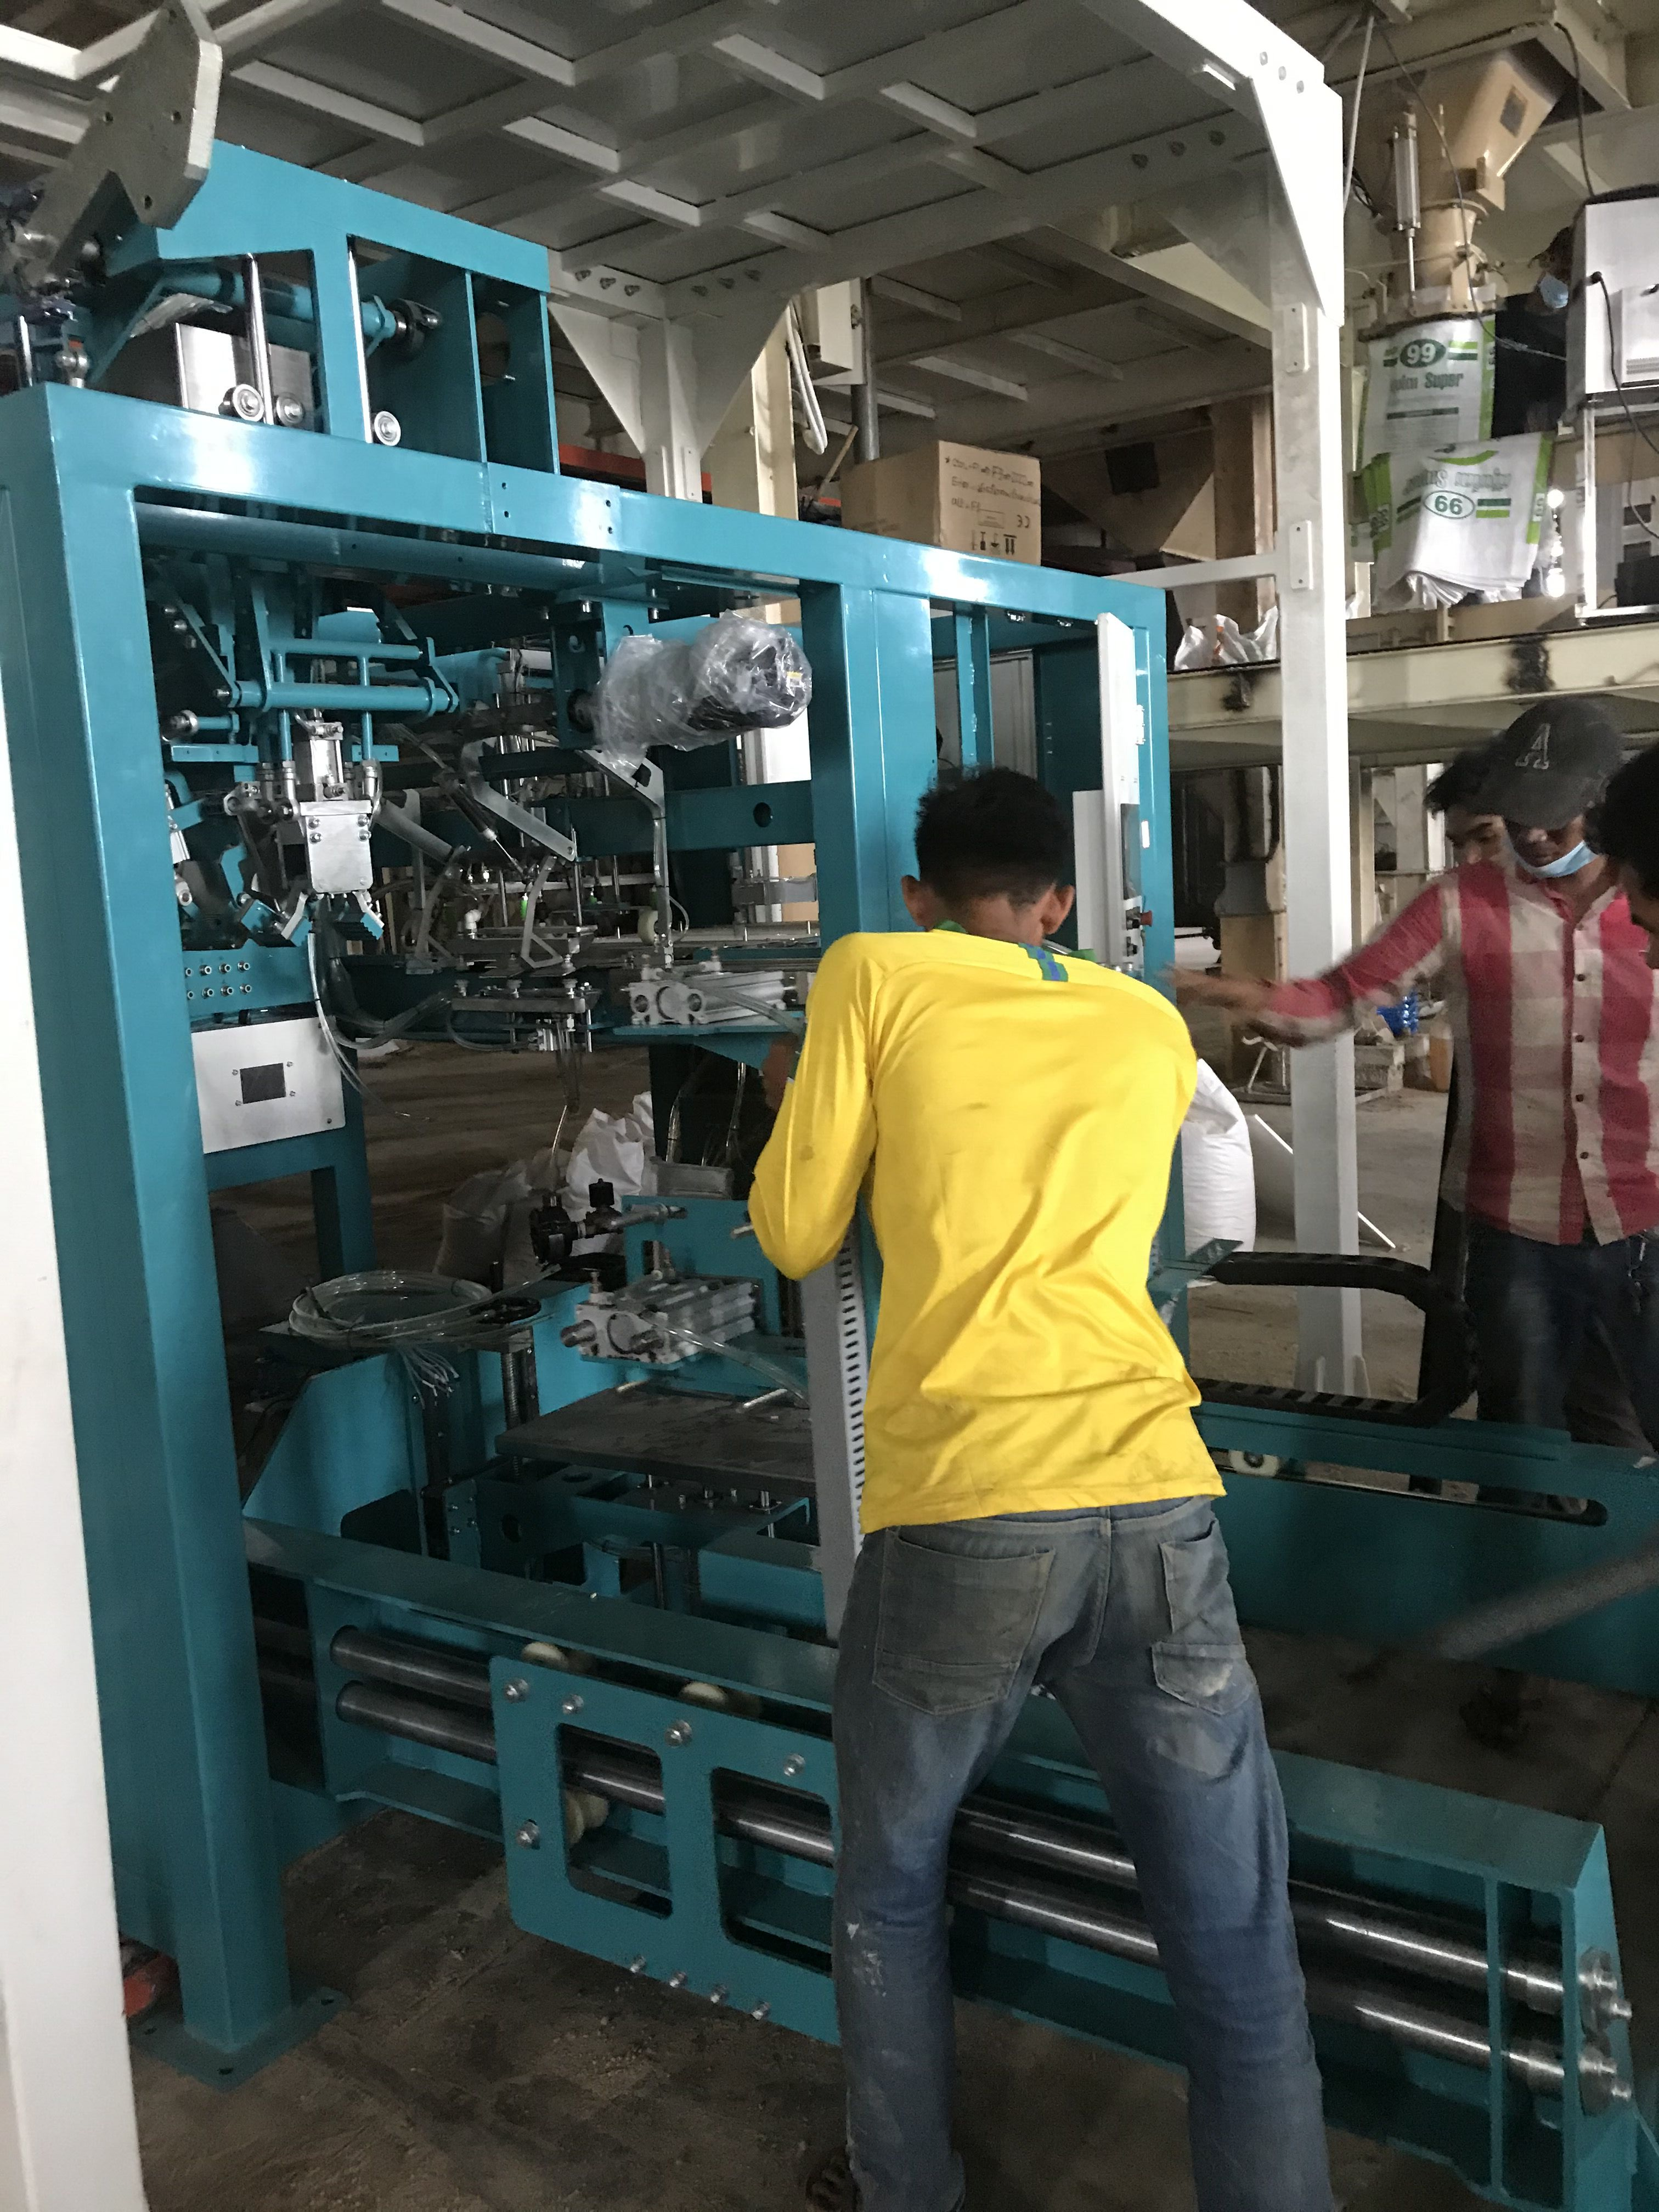 rice Bagging machine fully automated packing line for Bagging system fully automated packing line Textured Protein Bagging Machine Packing Machine bagging palletizing system